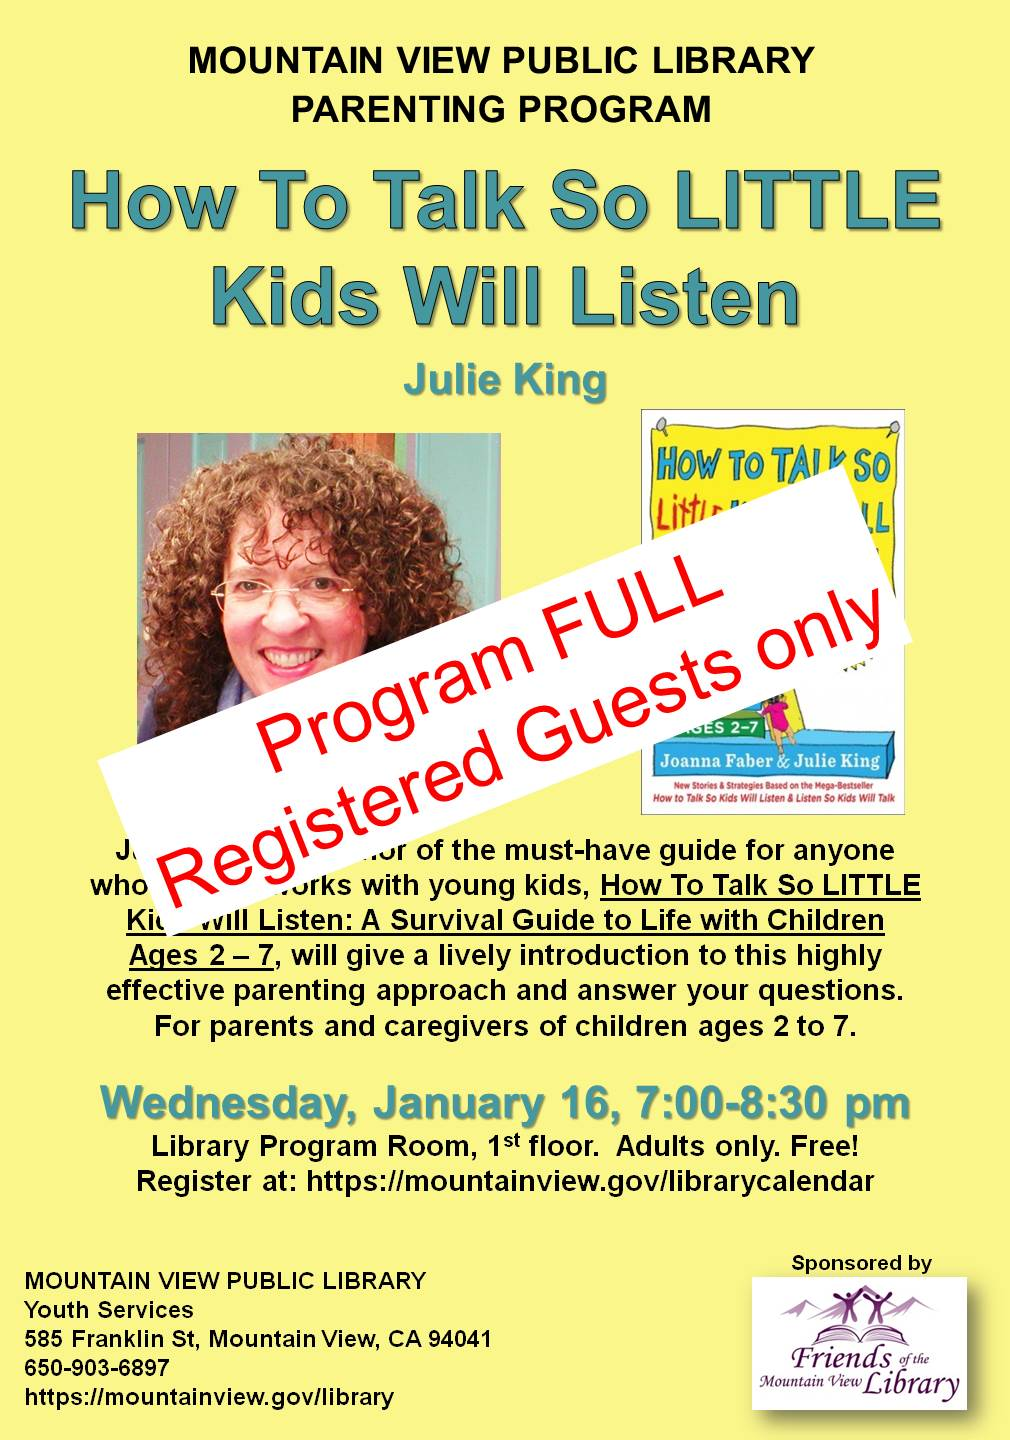 Program FULL: How To Talk So Little Kids Will Listen